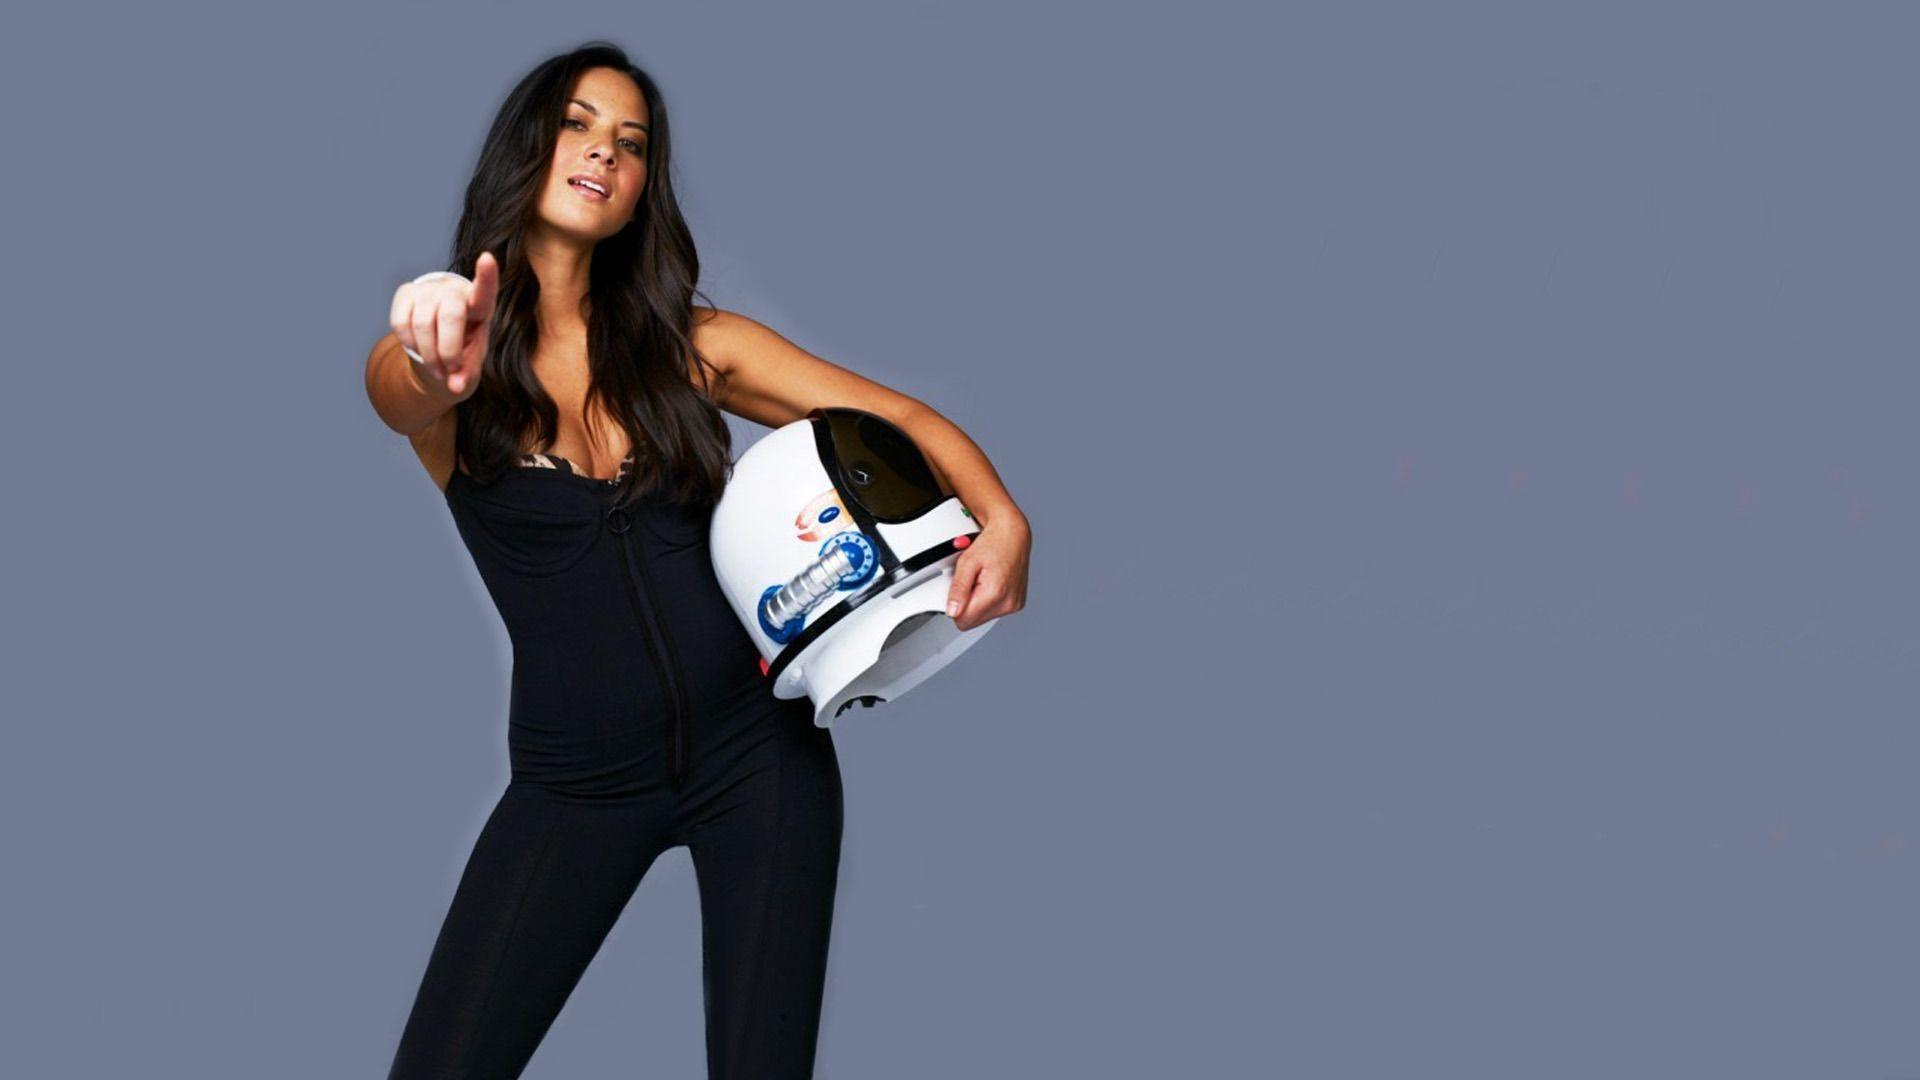 Olivia Munn Desktop Wallpapers Image & Pictures